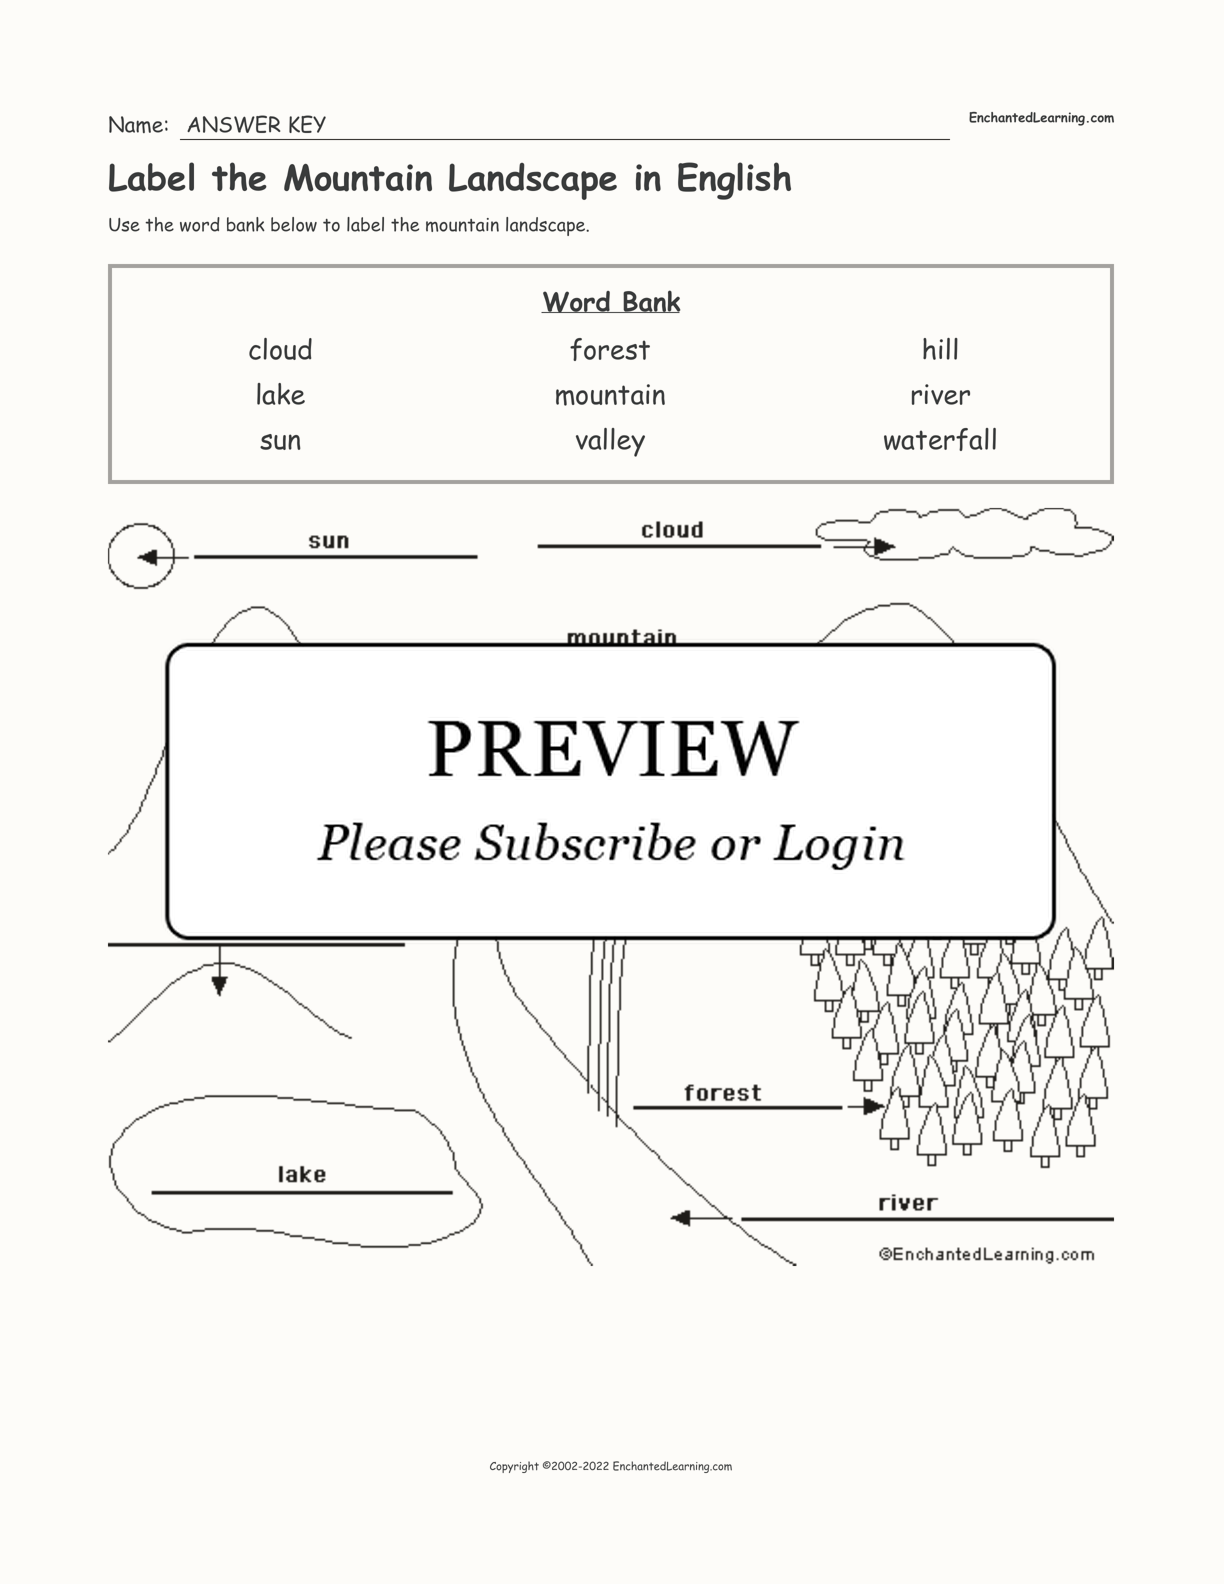 Label the Mountain Landscape in English interactive worksheet page 2